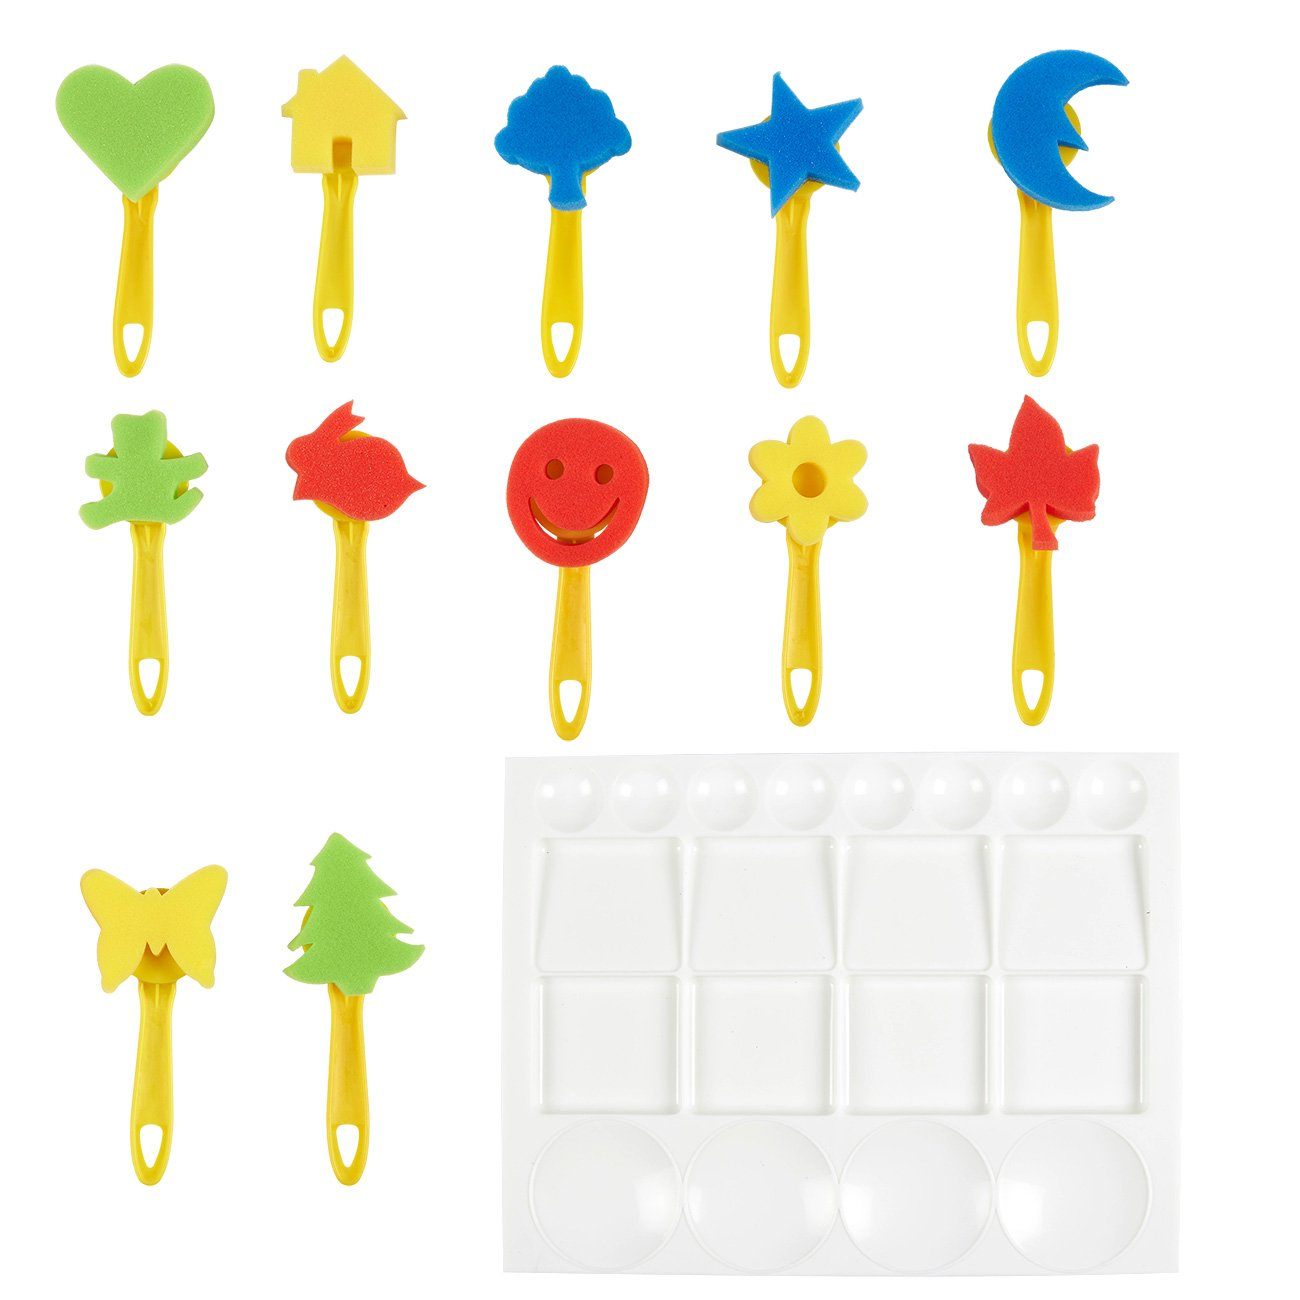 Kids Paint Sponges Set – 13 Piece Painting Stamps with Handle, and 1 Paint Palette, Art and Craft Supplies for Children, Assorted Pattern, Design May Vary, Multicolored Juvale 4336955228